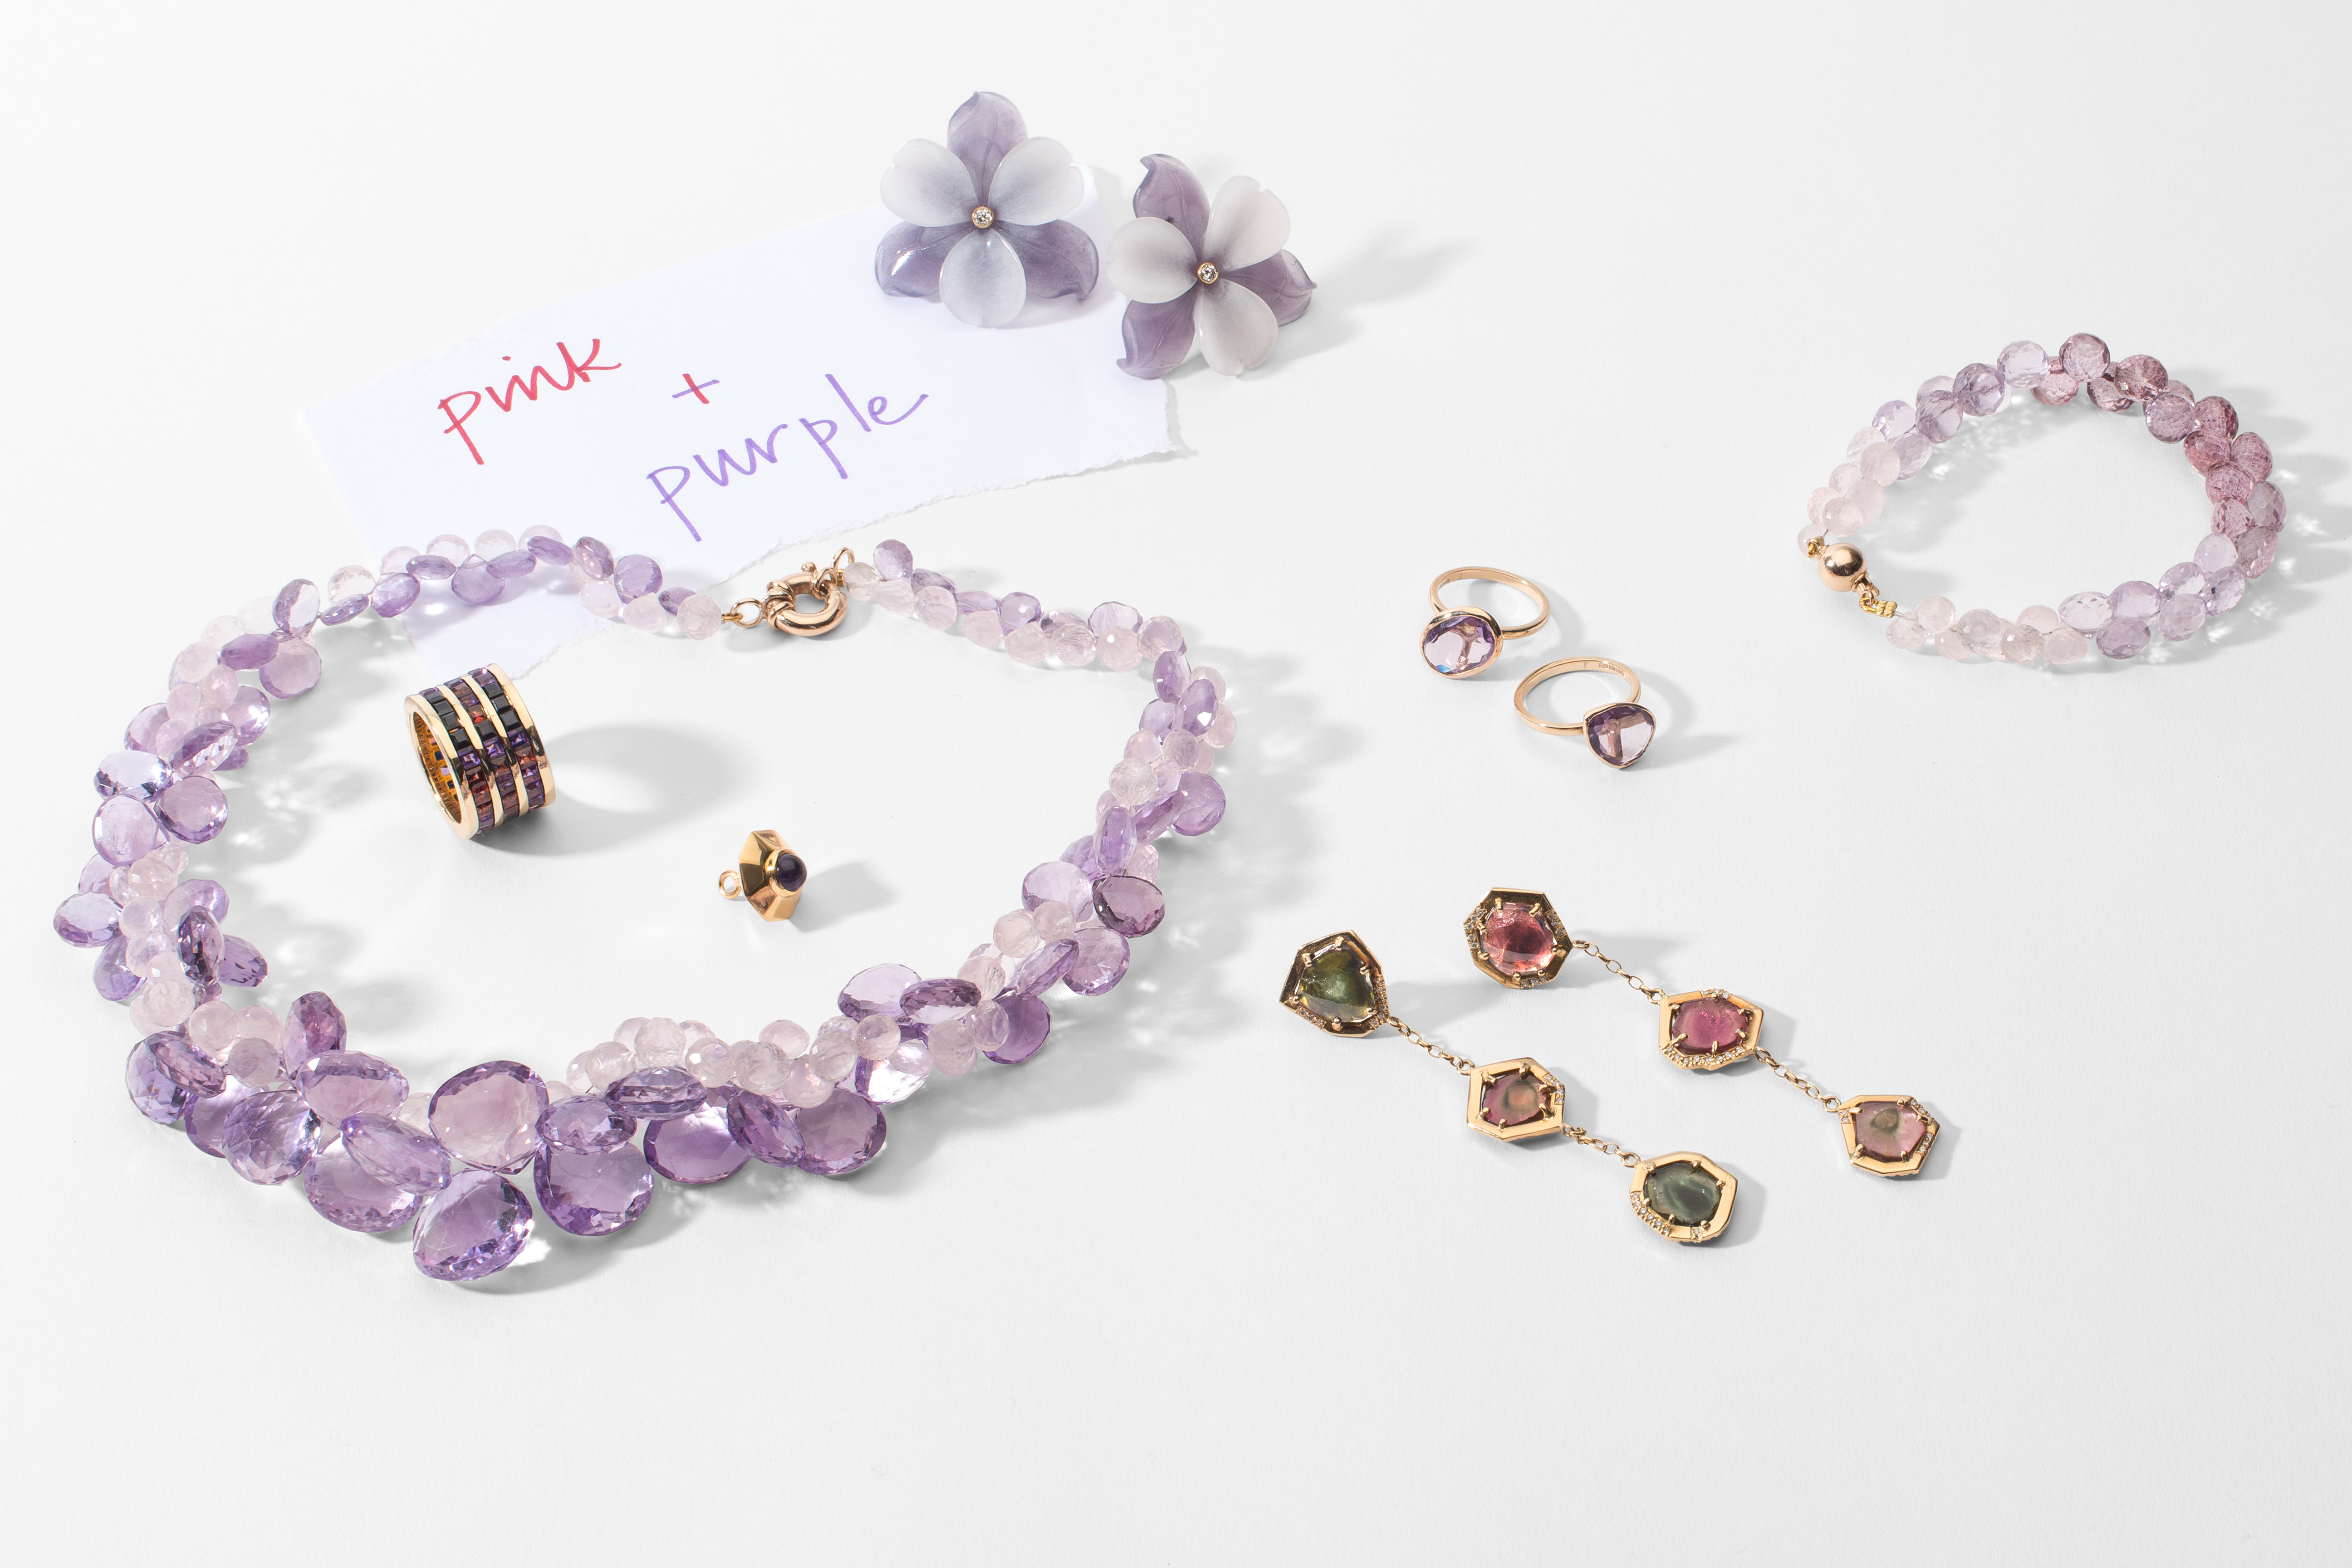 Pink and Purple Necklace, rings, earrings, and bracelets by Tessa Packard London Contemporary Fine Jewellery